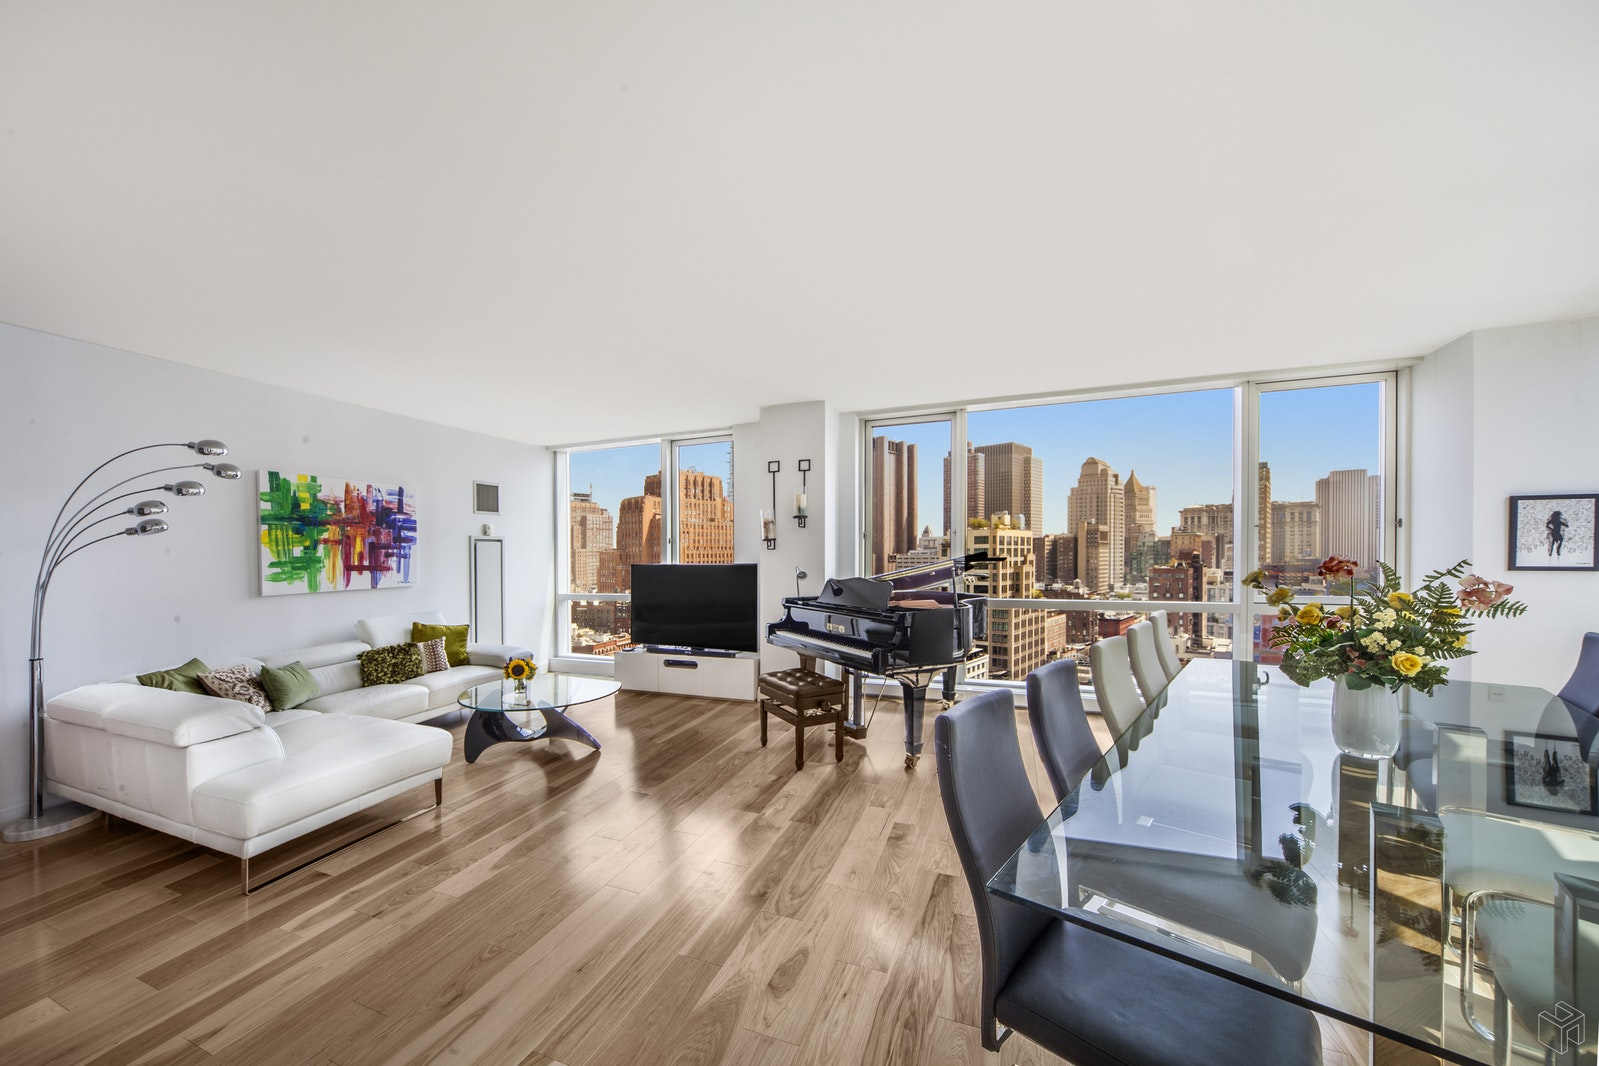 """This wondrous two bedroom, two and a half bathroom condominium home floats high in the sky over Tribeca and has over $100,000 in upgrades - new kitchen and floors. One enters the incredibly spacious living/dining room which has floor-to-ceiling windows, bringing in incredible light all day with open East and South City views. The open kitchen has tremendous storage and was completely renovated in 2017 with custom Hans Krug cabinetry, quartzite countertops, Miele stainless steel appliances, a vented stove-top and a Subzero refrigerator. The roomy master king-sized bedroom has a luxurious marble master bathroom with double sinks on marble countertops, a deep soaking tub and a separate walk-in shower. The second bedroom also has an en suite bathroom and both bedrooms feature floor-to-ceiling windows with gorgeous open Eastern views. There is a half bathroom in the bedroom wing with a brand new Bosch washer/dryer. The floors throughout the apartment are 6.5"""" Hickory in a natural color and were installed in 2017. Other apartment features include central heat and air conditioning and all rooms have floor-to-ceiling windows. 200 Chambers is a luxury condominium with a 24 hour doorman, concierge and wonderful building amenities. The double-height ceiling lobby is bright and welcoming and features a planted courtyard. There is a spectacular roof terrace on the 8th floor with multiple seating areas and River and City views. There is also a gym, a sky-lit pool, a playroom and a resident's lounge. There is a garage in the building (separate fee) that is directly accessible through the building. The location cannot be beat - close to Whole Foods, Bed Bath and Beyond, Hudson River Park, Le District, major subways, the PATH train and a wonderful variety of world class restaurants. NO PETS and NO SMOKERS."""